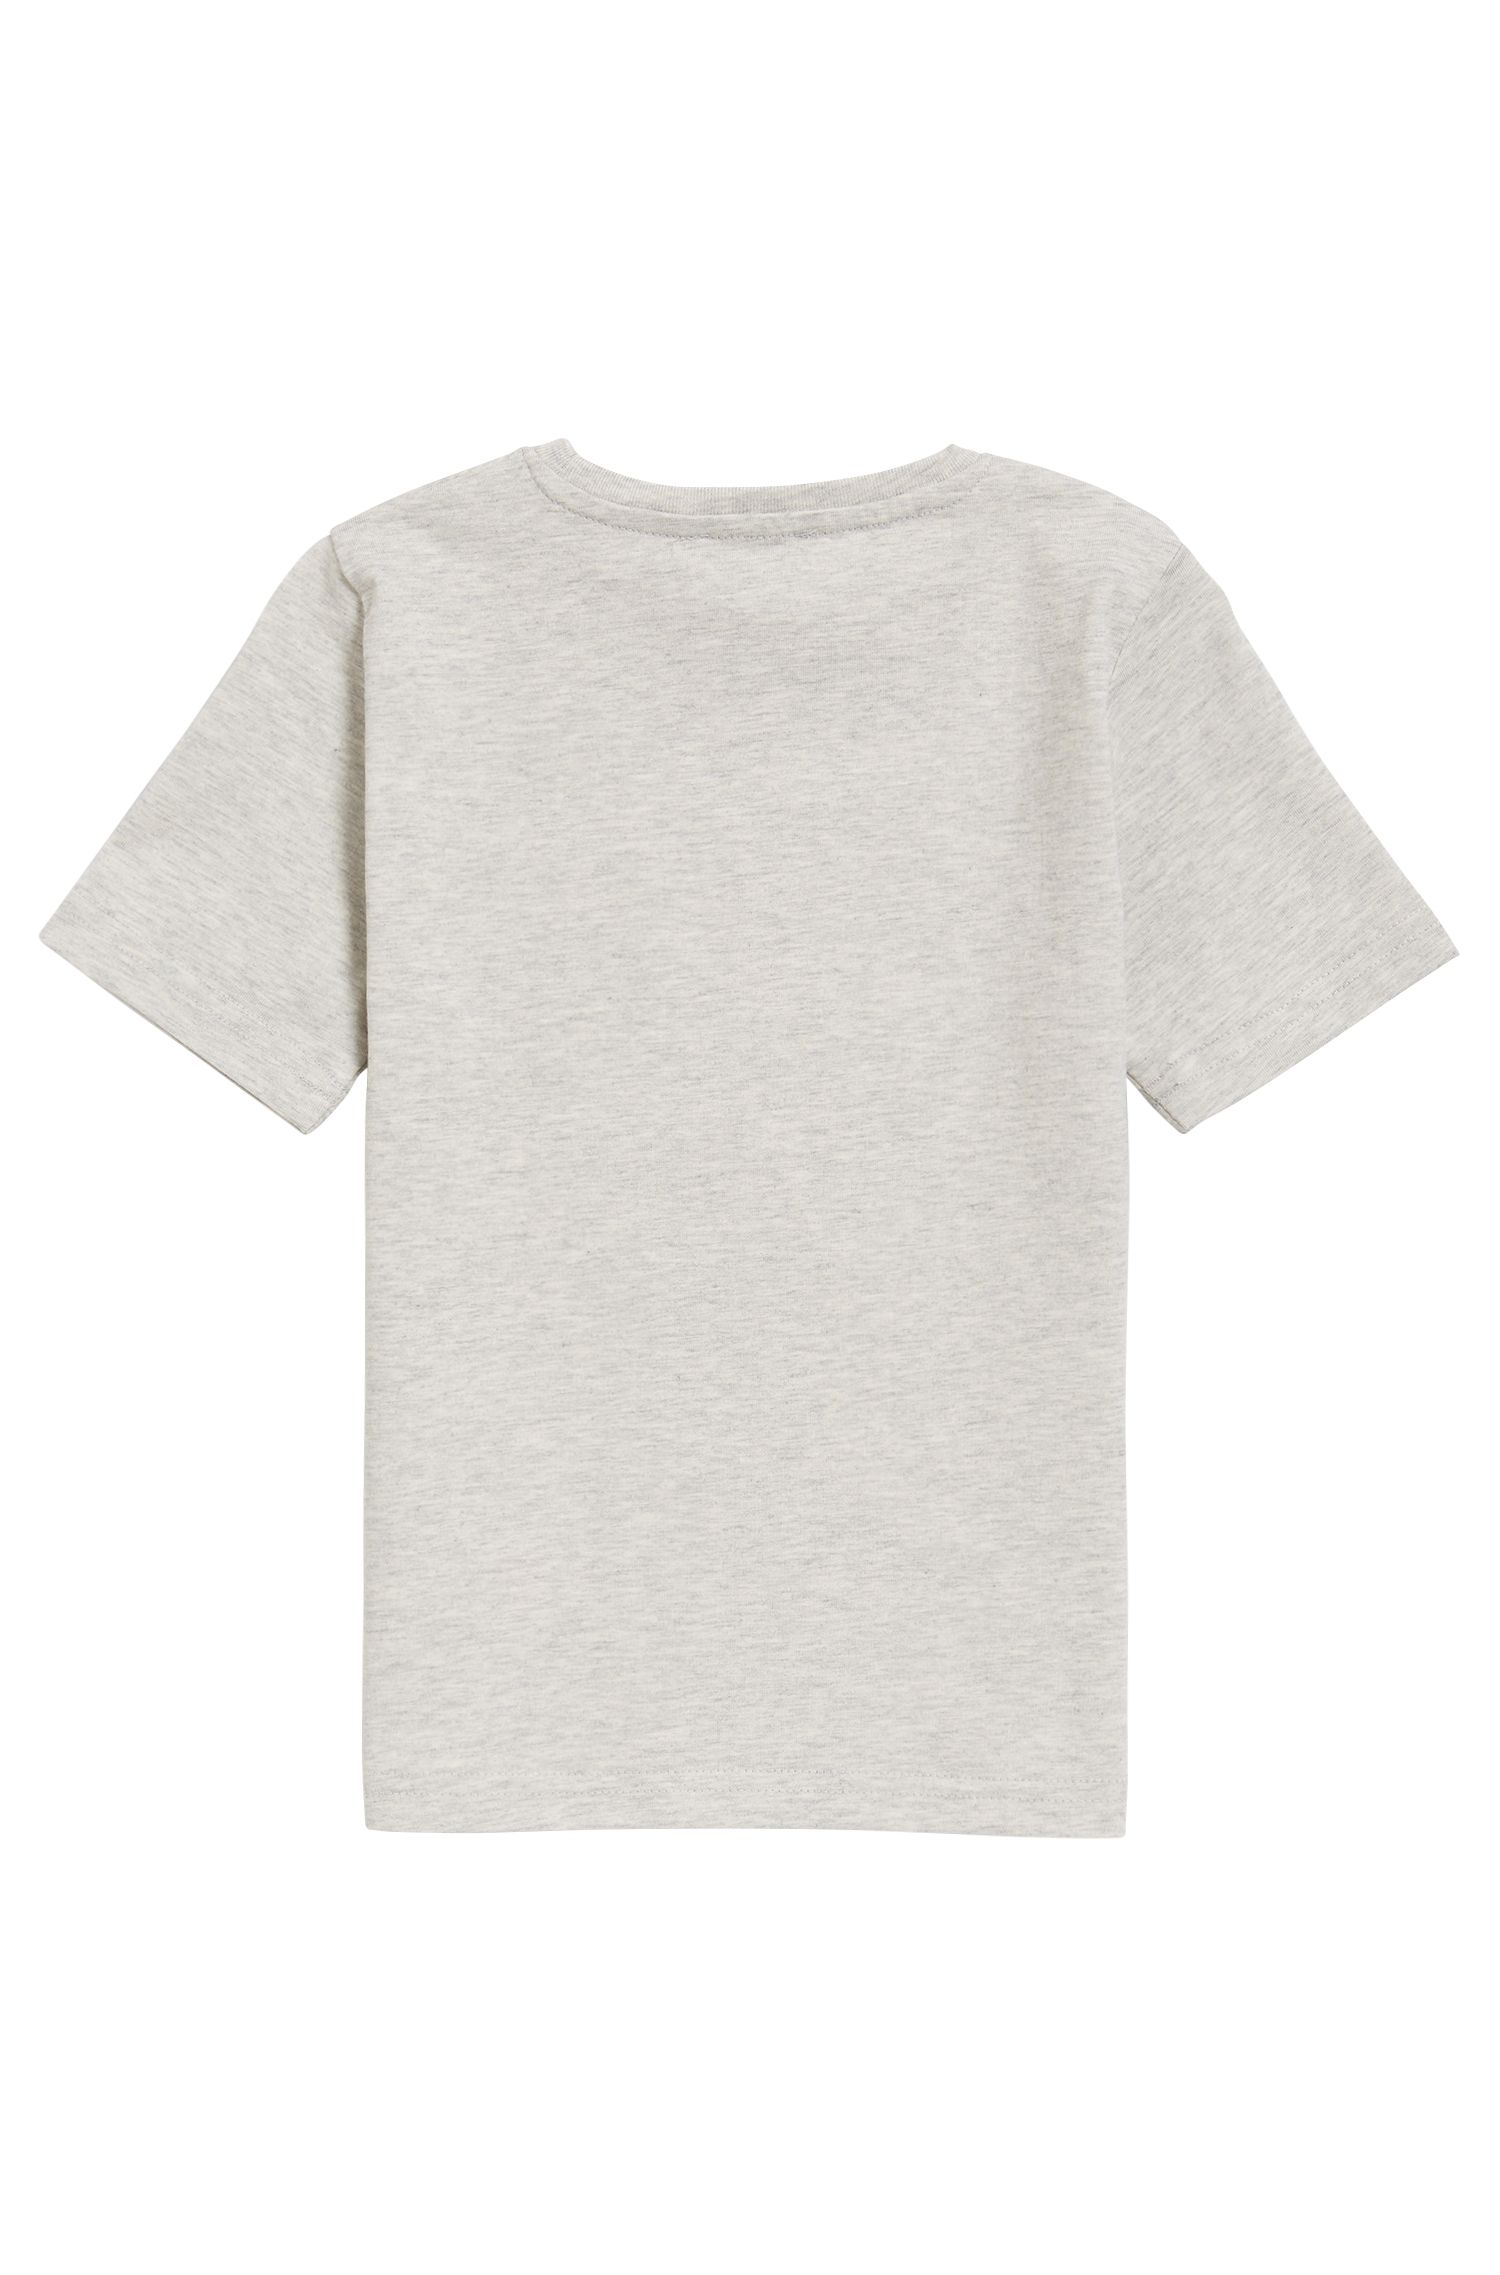 T-shirt enfant à logo en jersey de coton simple, Gris chiné